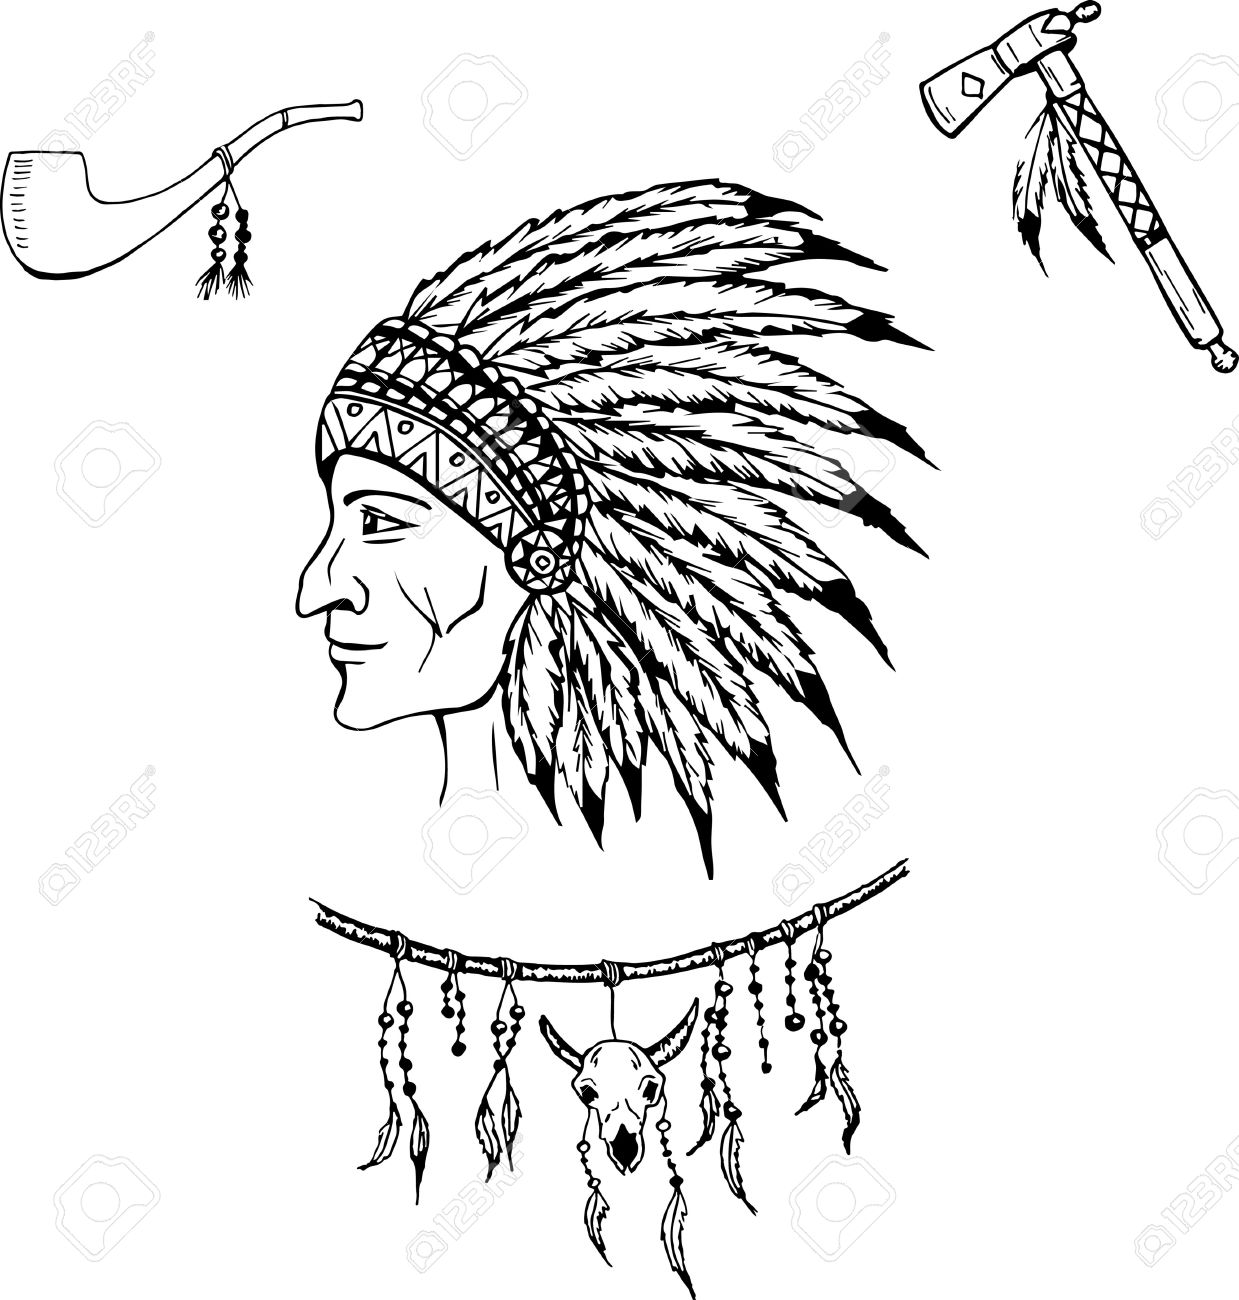 1239x1300 Man In The Native American Indian Chief. Indian Feather Headdress